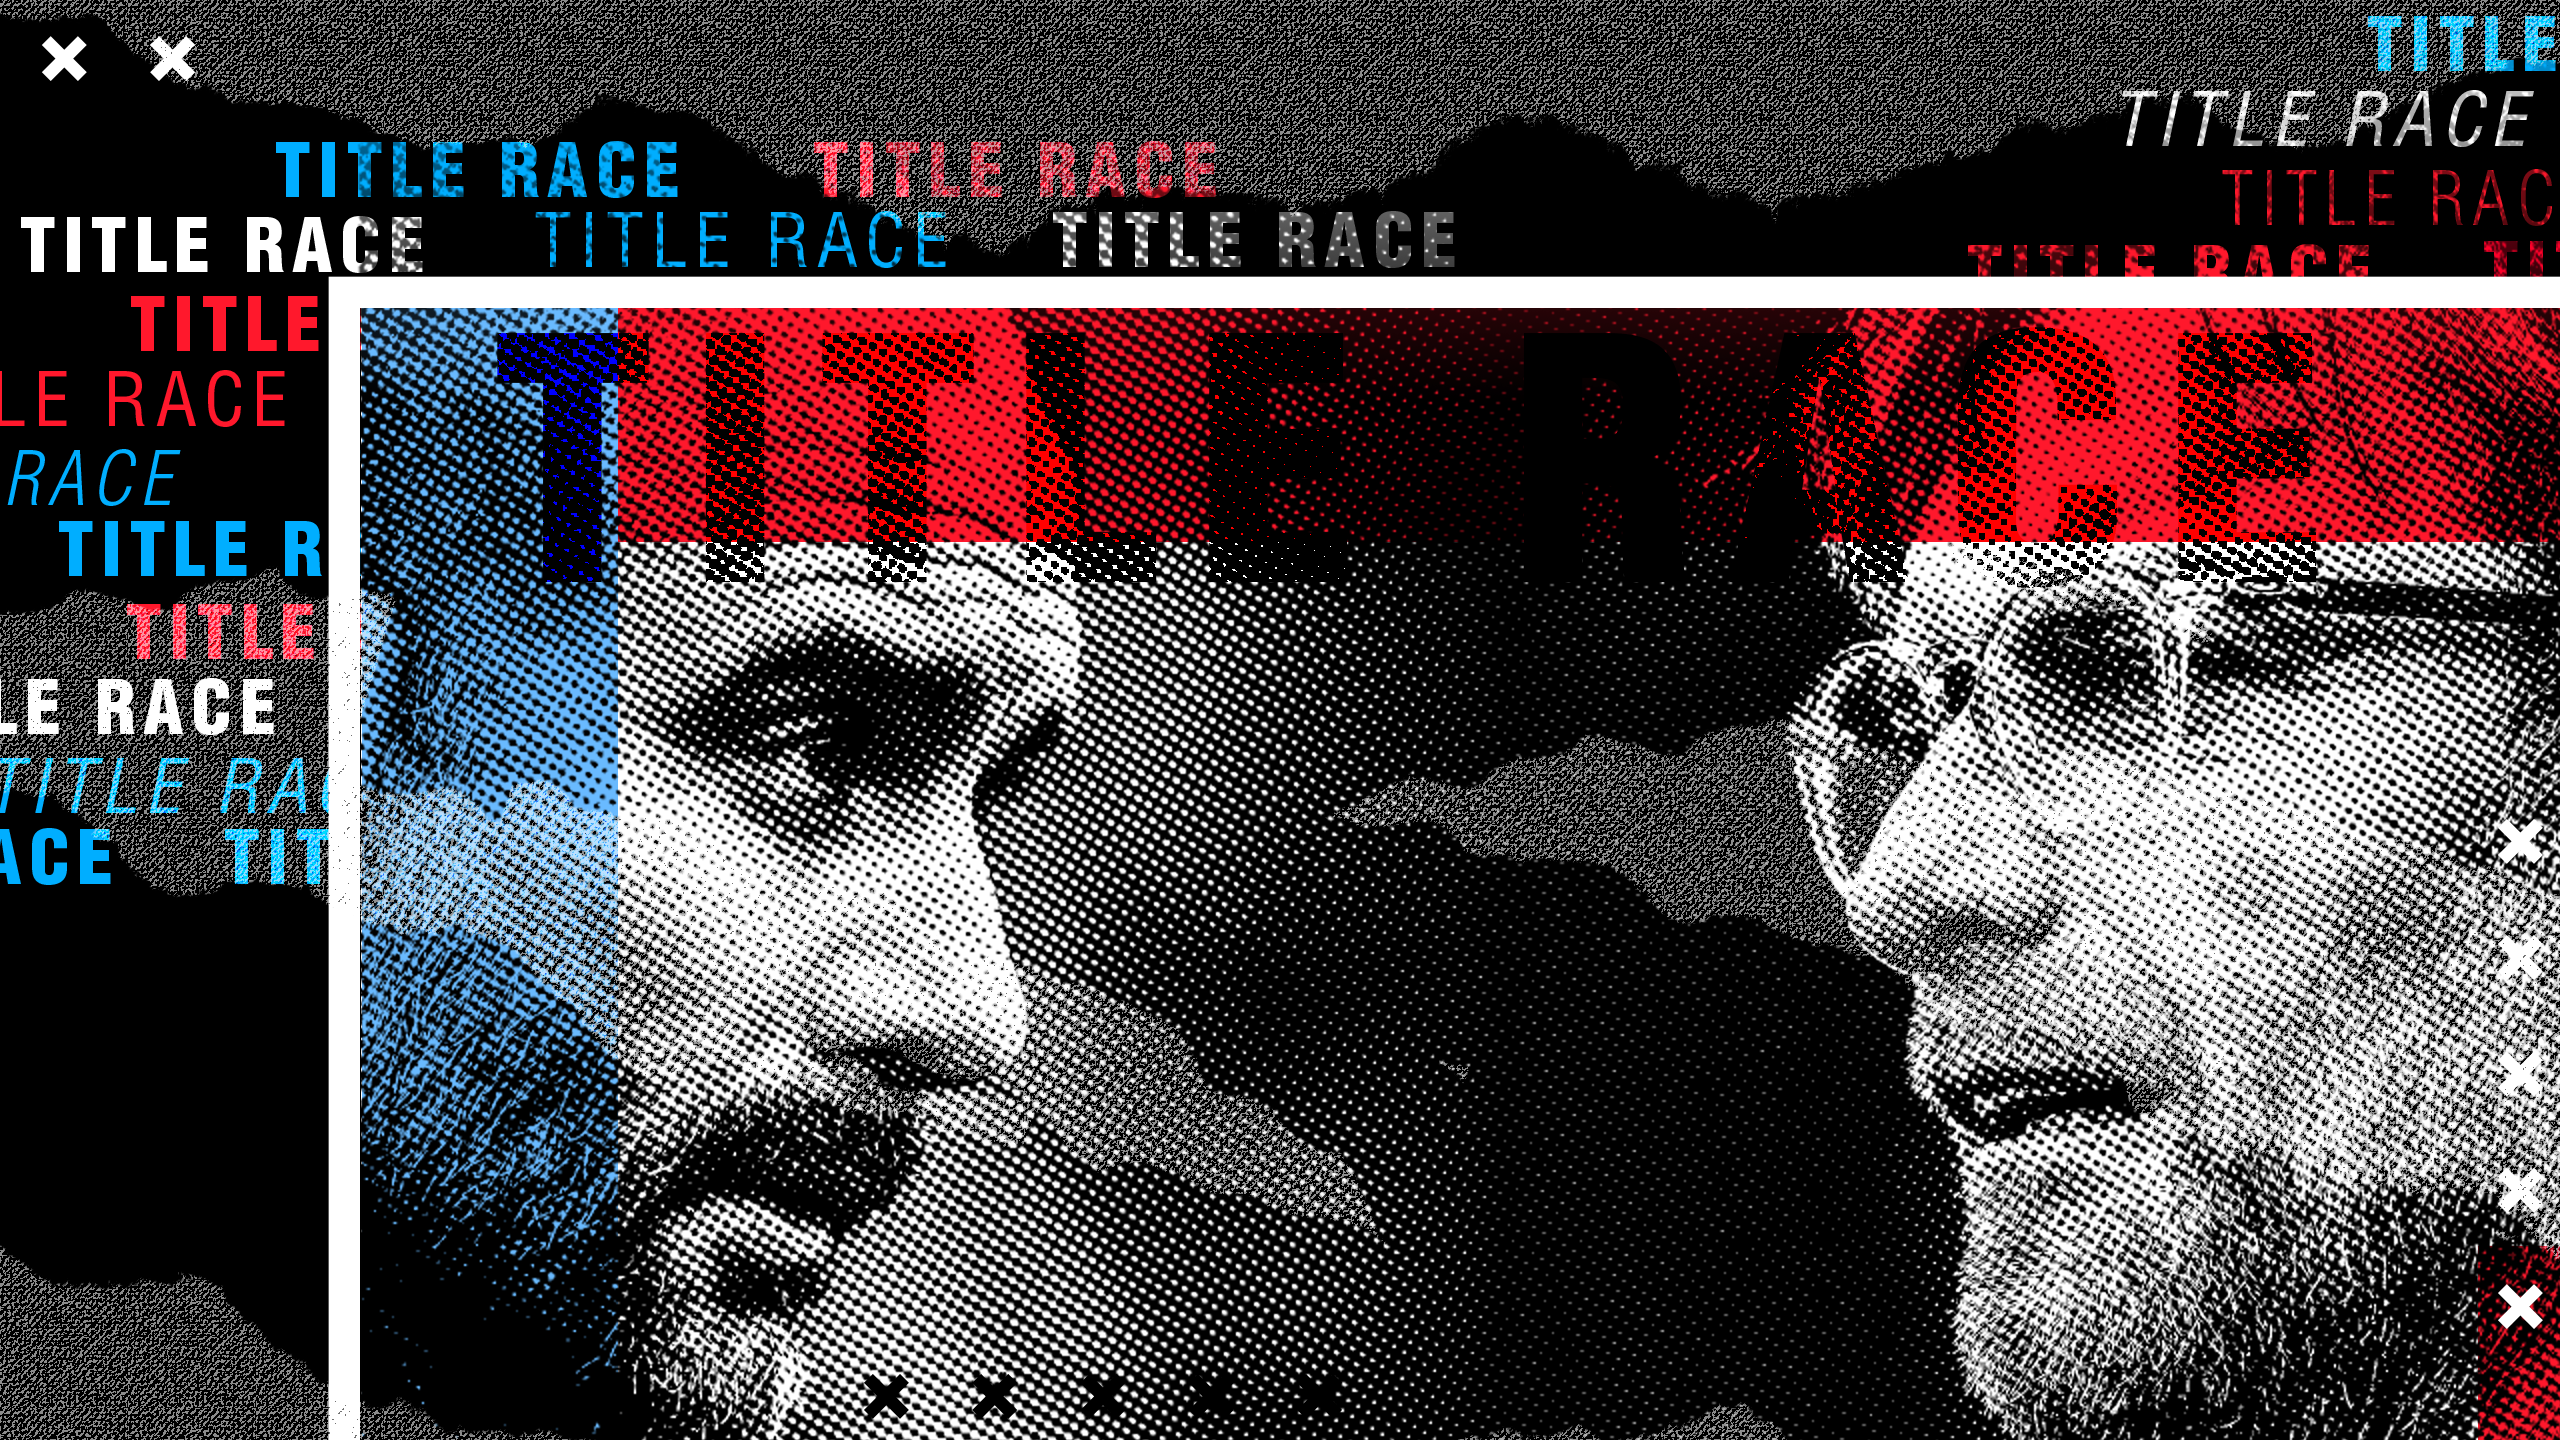 The Title Race